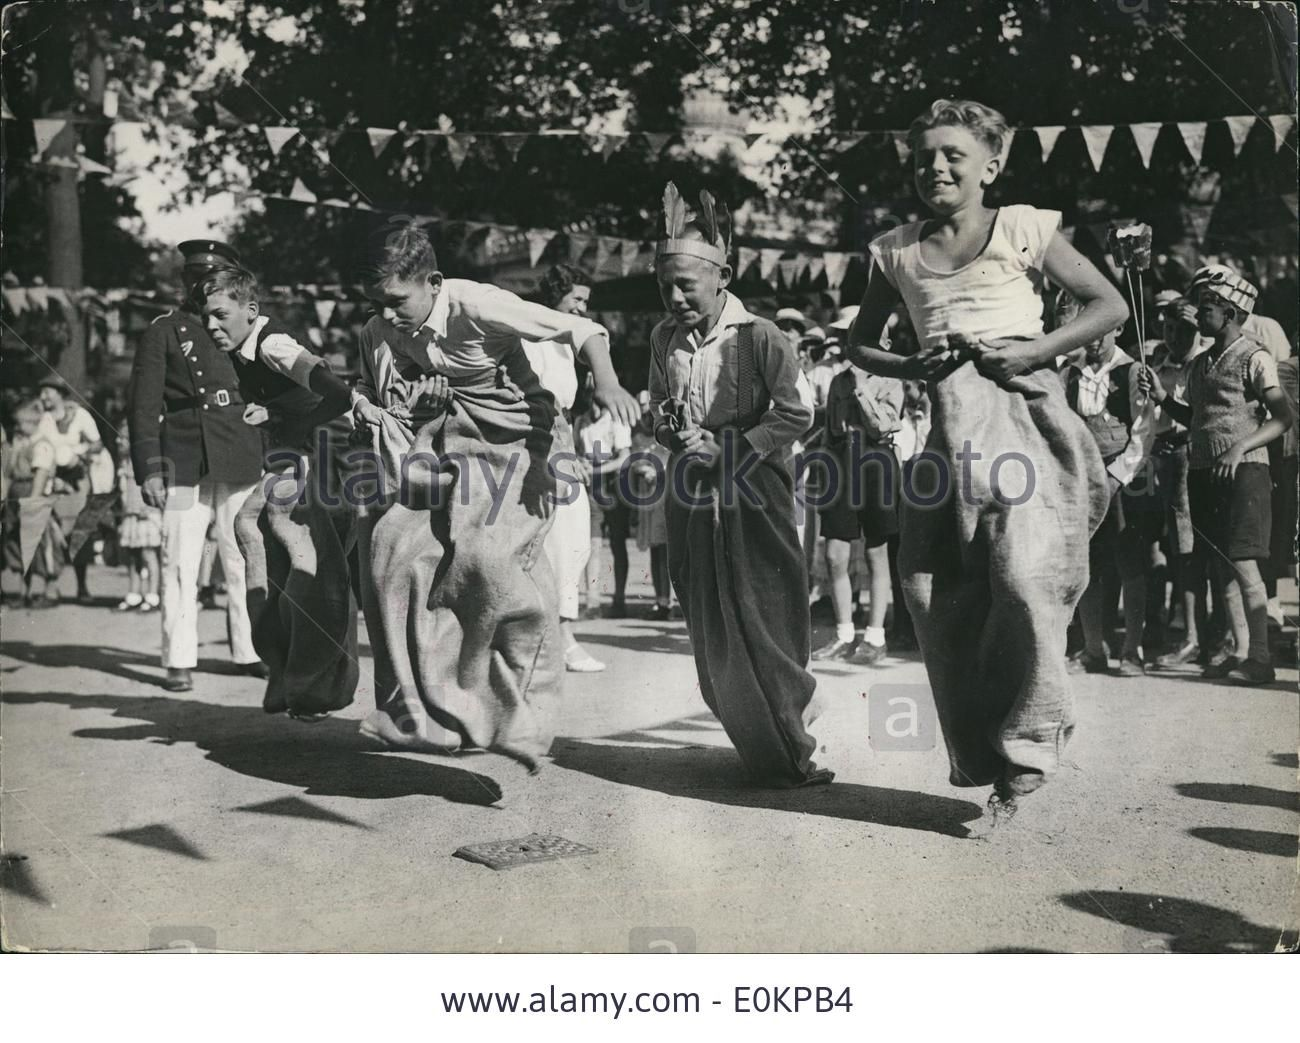 Download this stock image: Jul 24, 1935 - Berlin, Germany - A children's sack at the Berlin Zoo during a great festival for children spending their vacatio - E0KPB4 from Alamy's library of millions of high resolution stock photos, illustrations and vectors.